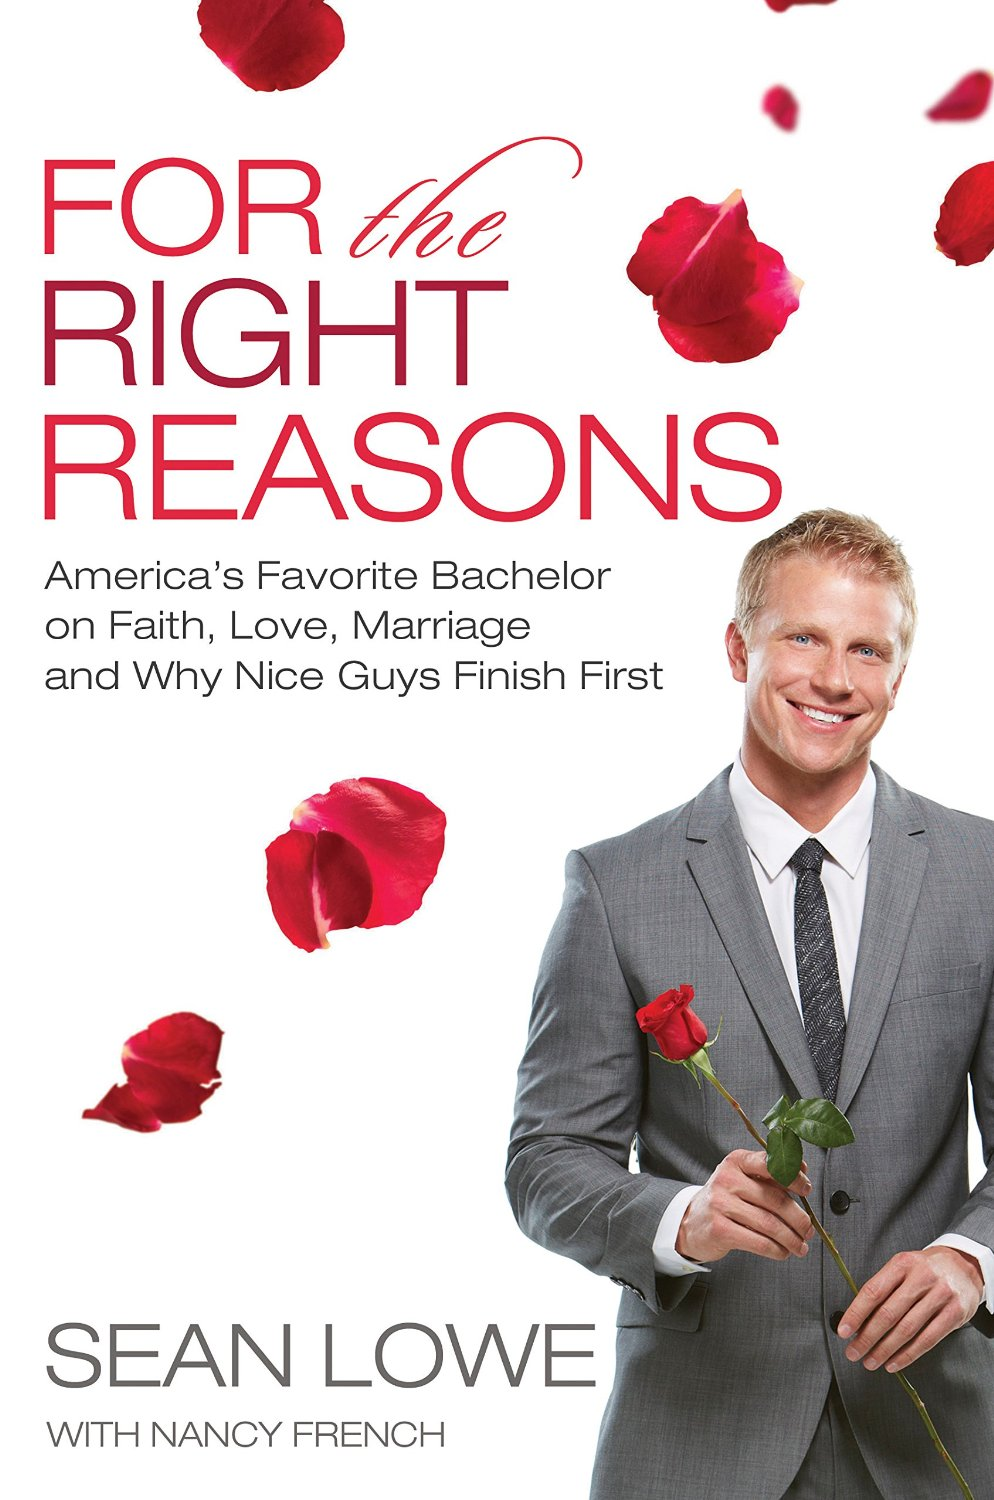 Book Cover of For All the Right Reason